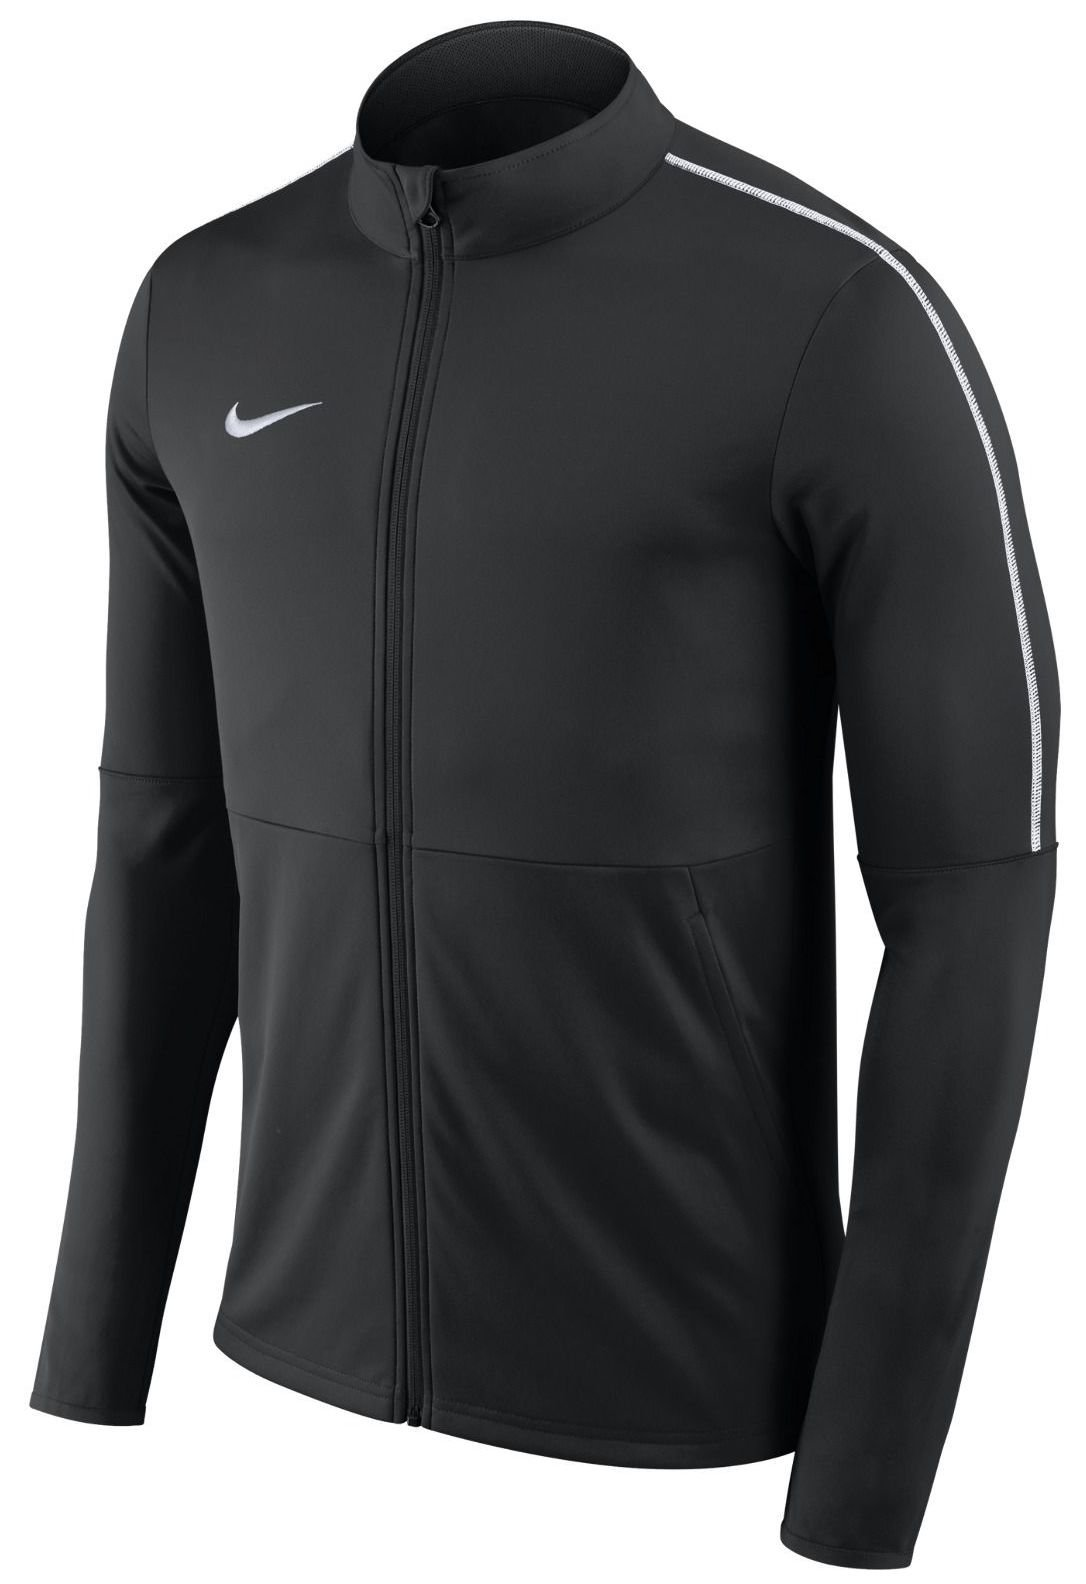 Nike Park 18 Knit Track Jacket Men's (Black, XL)